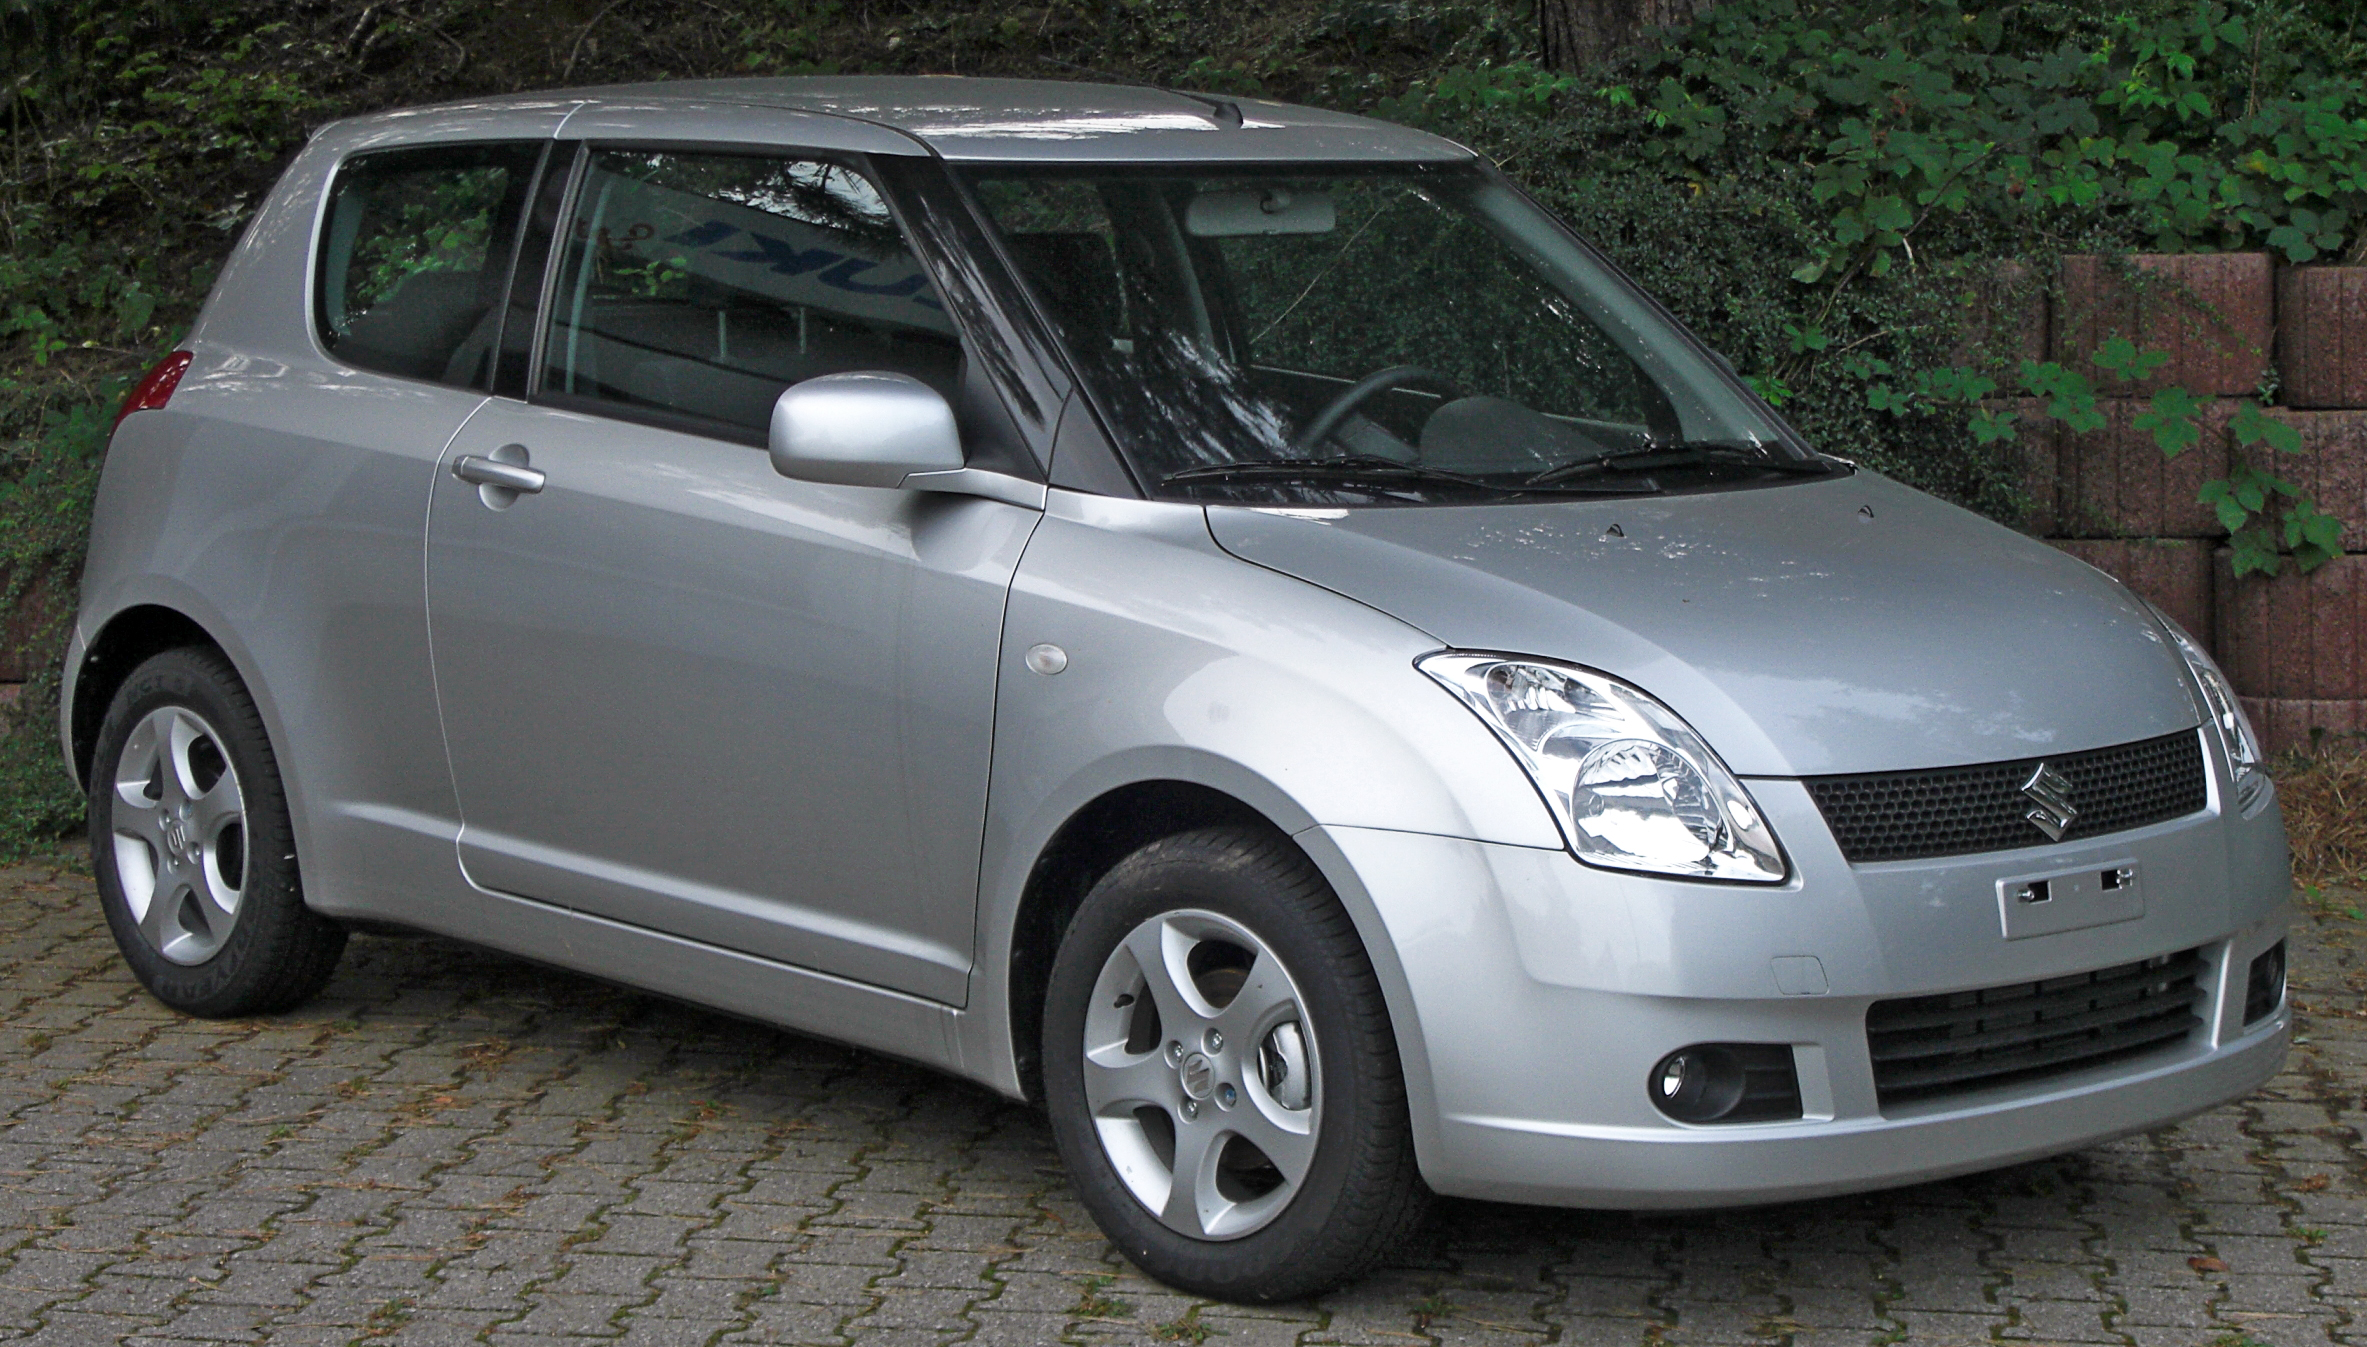 2009 suzuki swift iv pictures information and specs auto. Black Bedroom Furniture Sets. Home Design Ideas